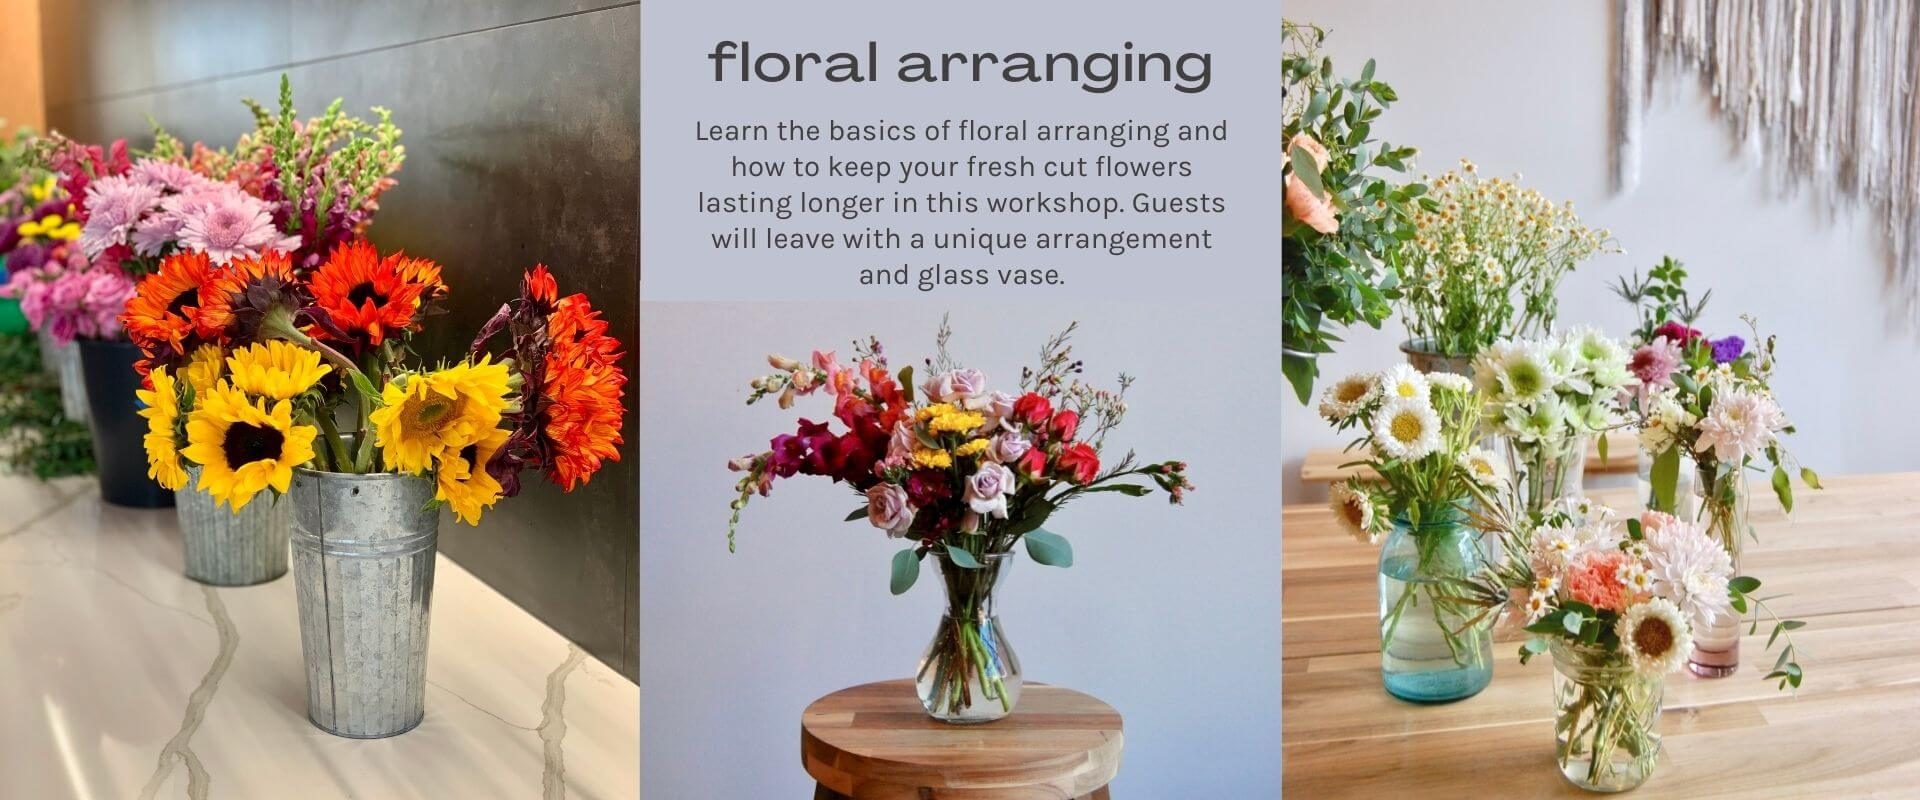 floral arranging text on lavender background - image yellow and orange sunflowers and assorted flowers in glass vases